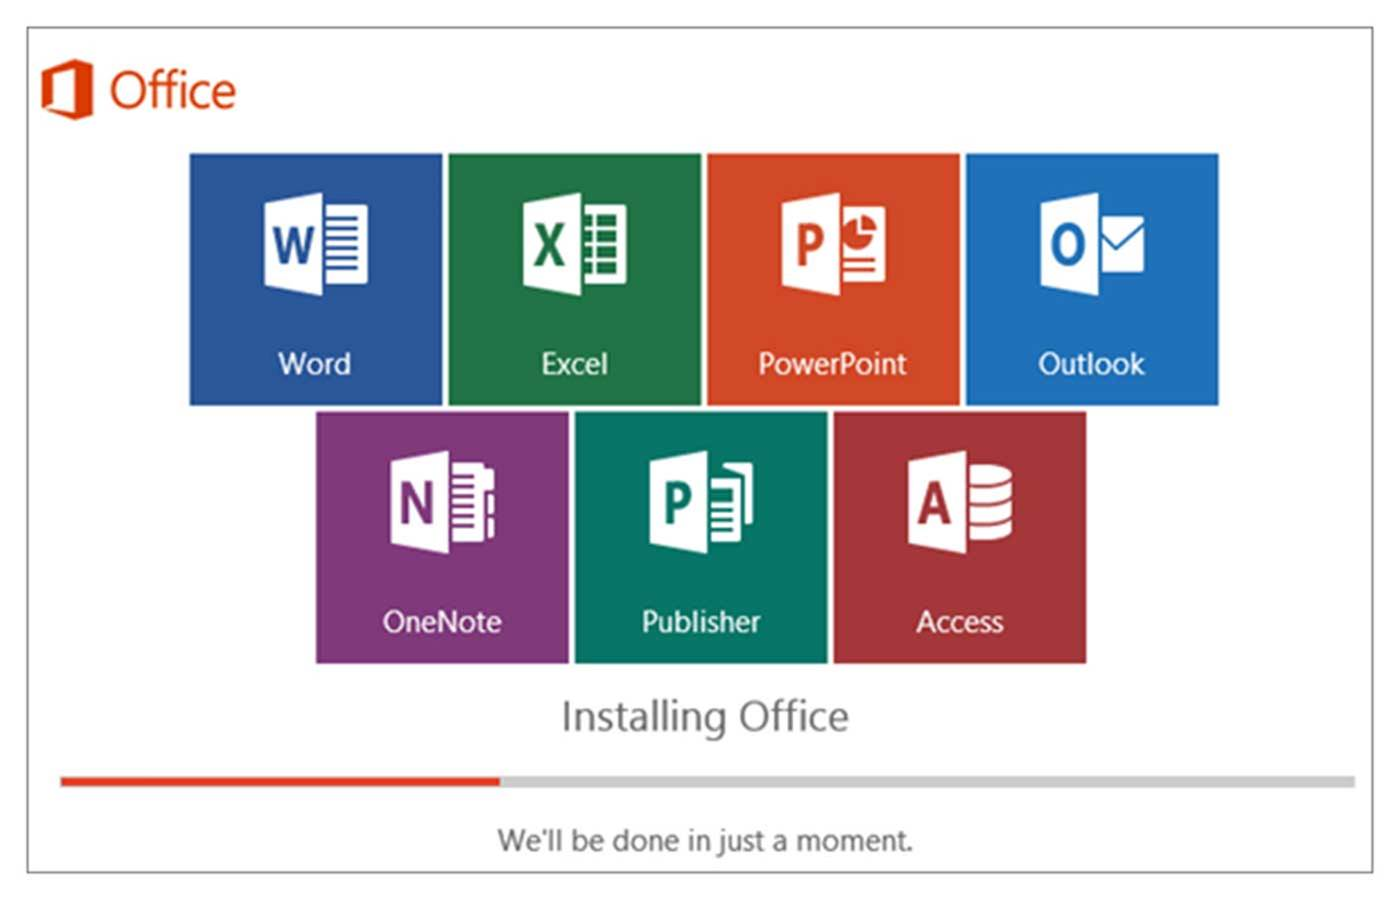 Microsoft releases Office 2019 for Windows and Mac